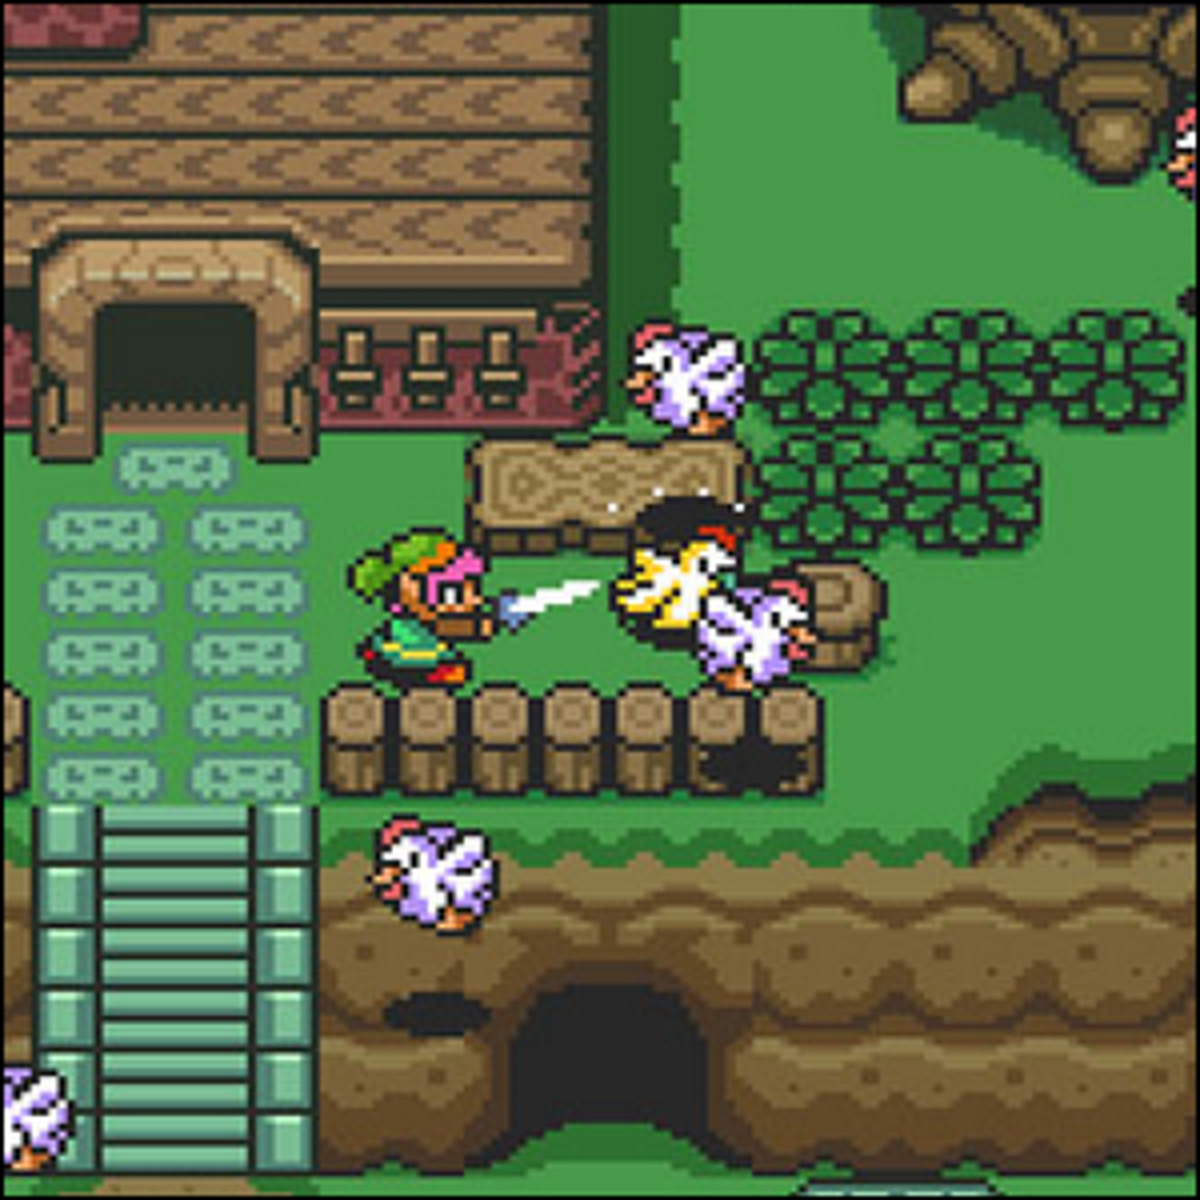 Link attacking a group of chickens (cuccos) in Hyrule.